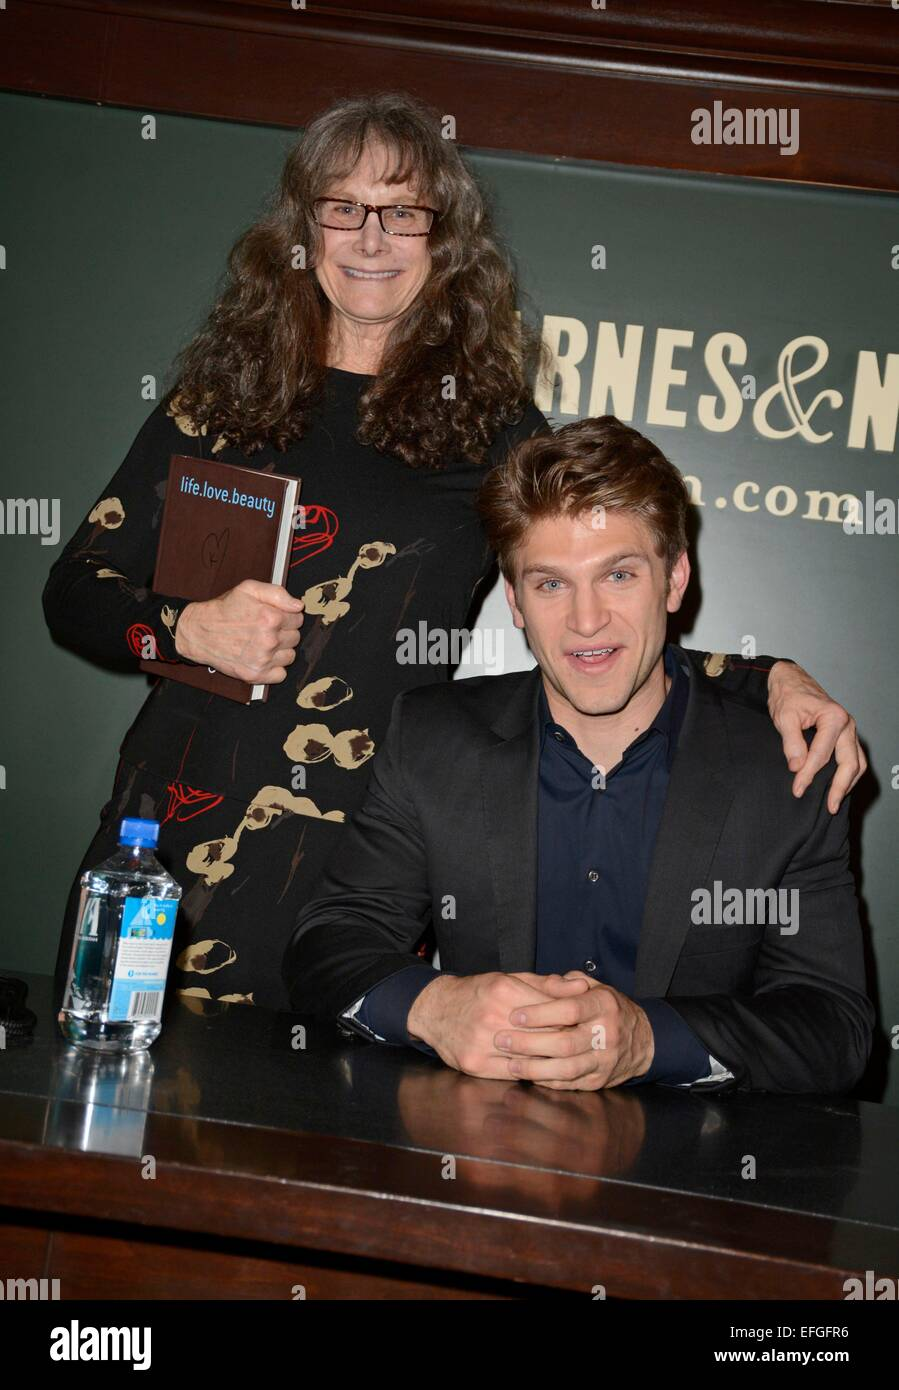 New York, NY, USA. 3rd Feb, 2015. Keegan Allen with mother Joan Snyder at in-store appearance for Keegan Allen Book - Stock Image